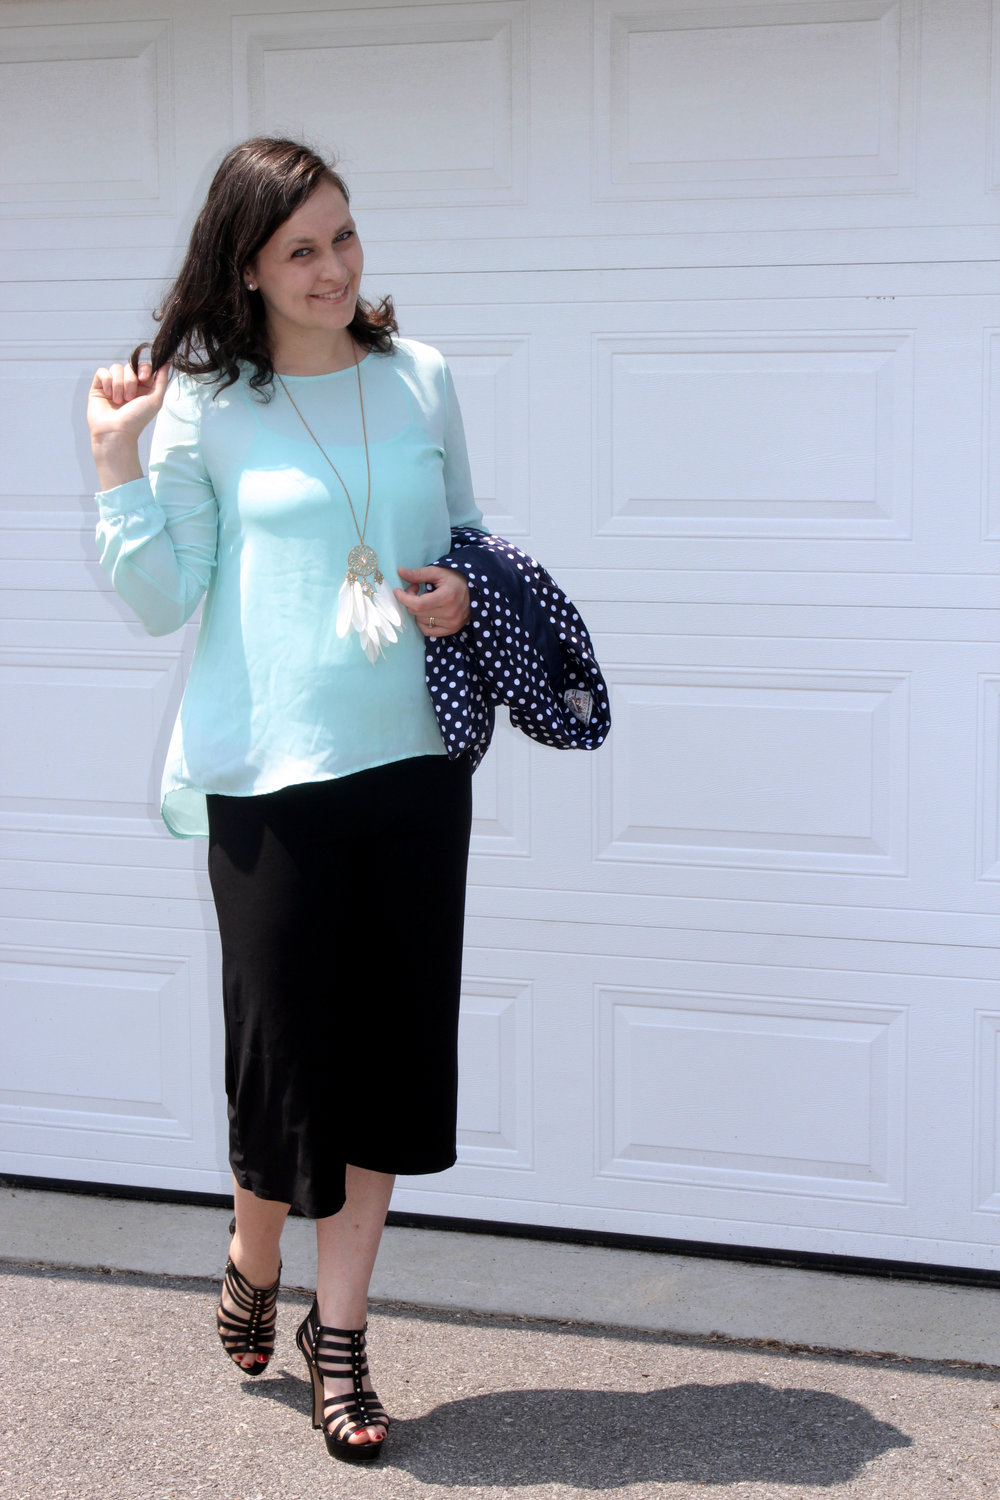 turquoise blouse navy blue polka dot jacket black pants playing with hair.jpg